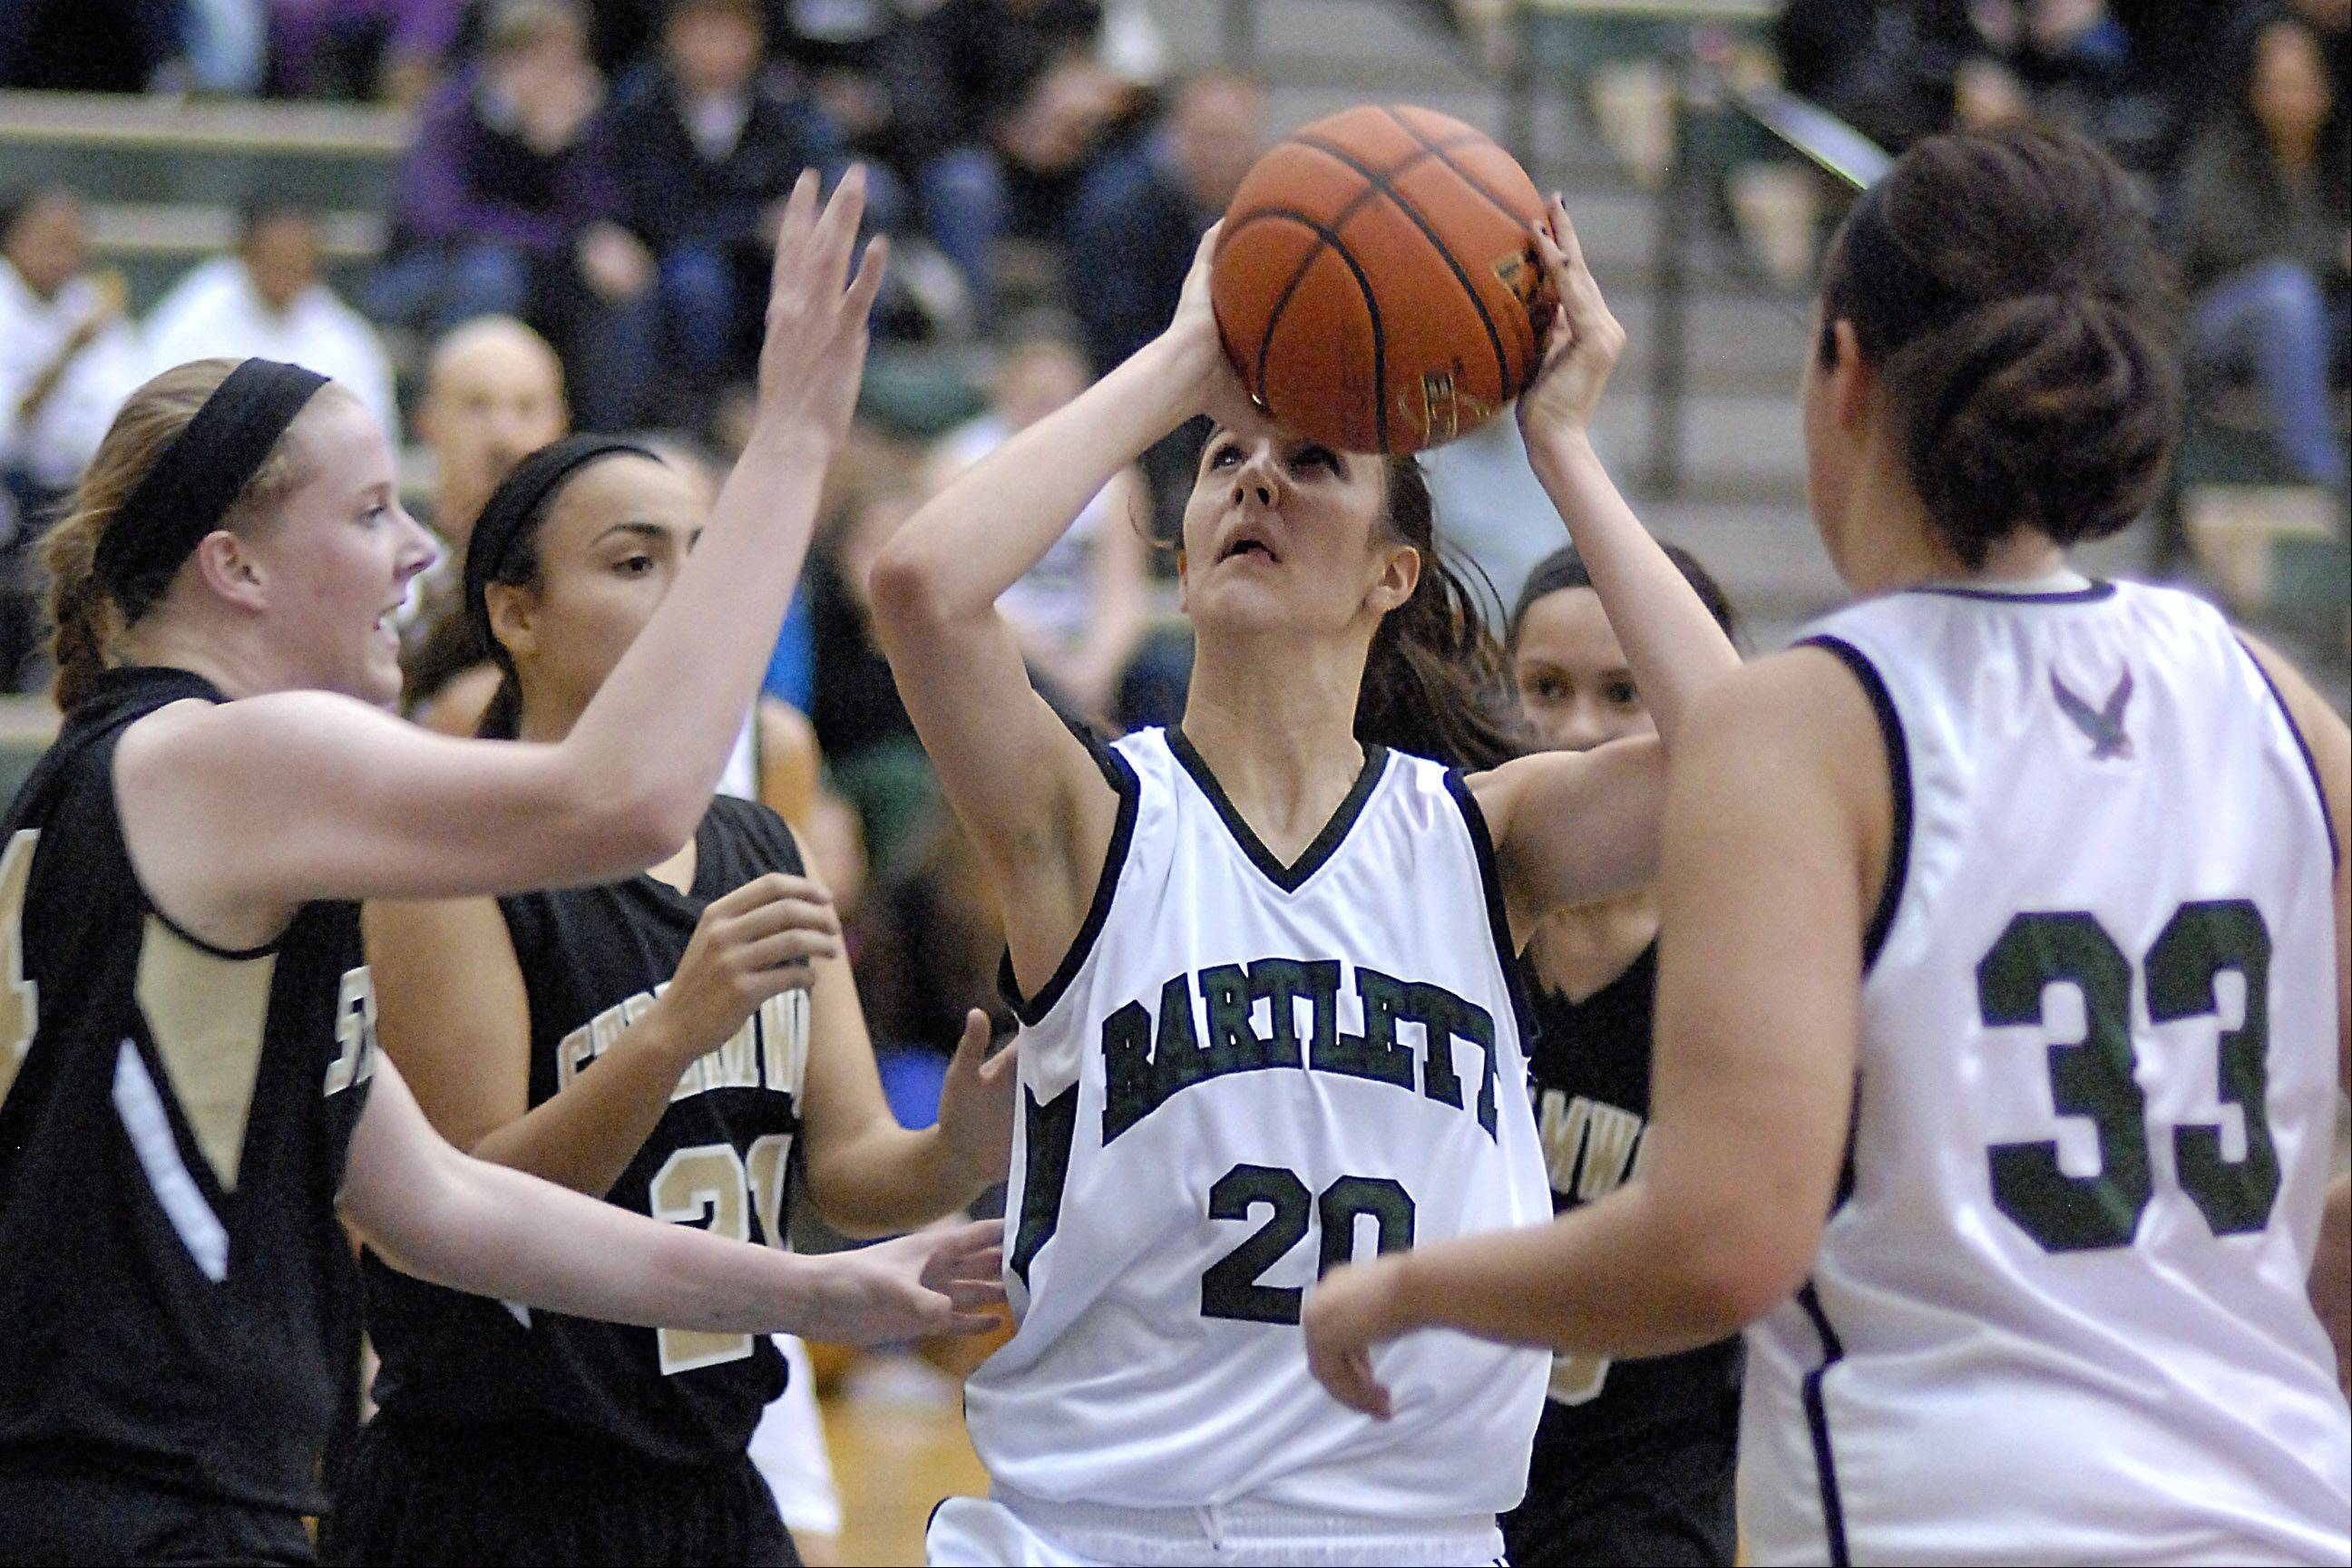 Streamwood�s Hannah McGlone attempts to block a shot by Bartlett�s Elizabeth Arco in the second quarter.